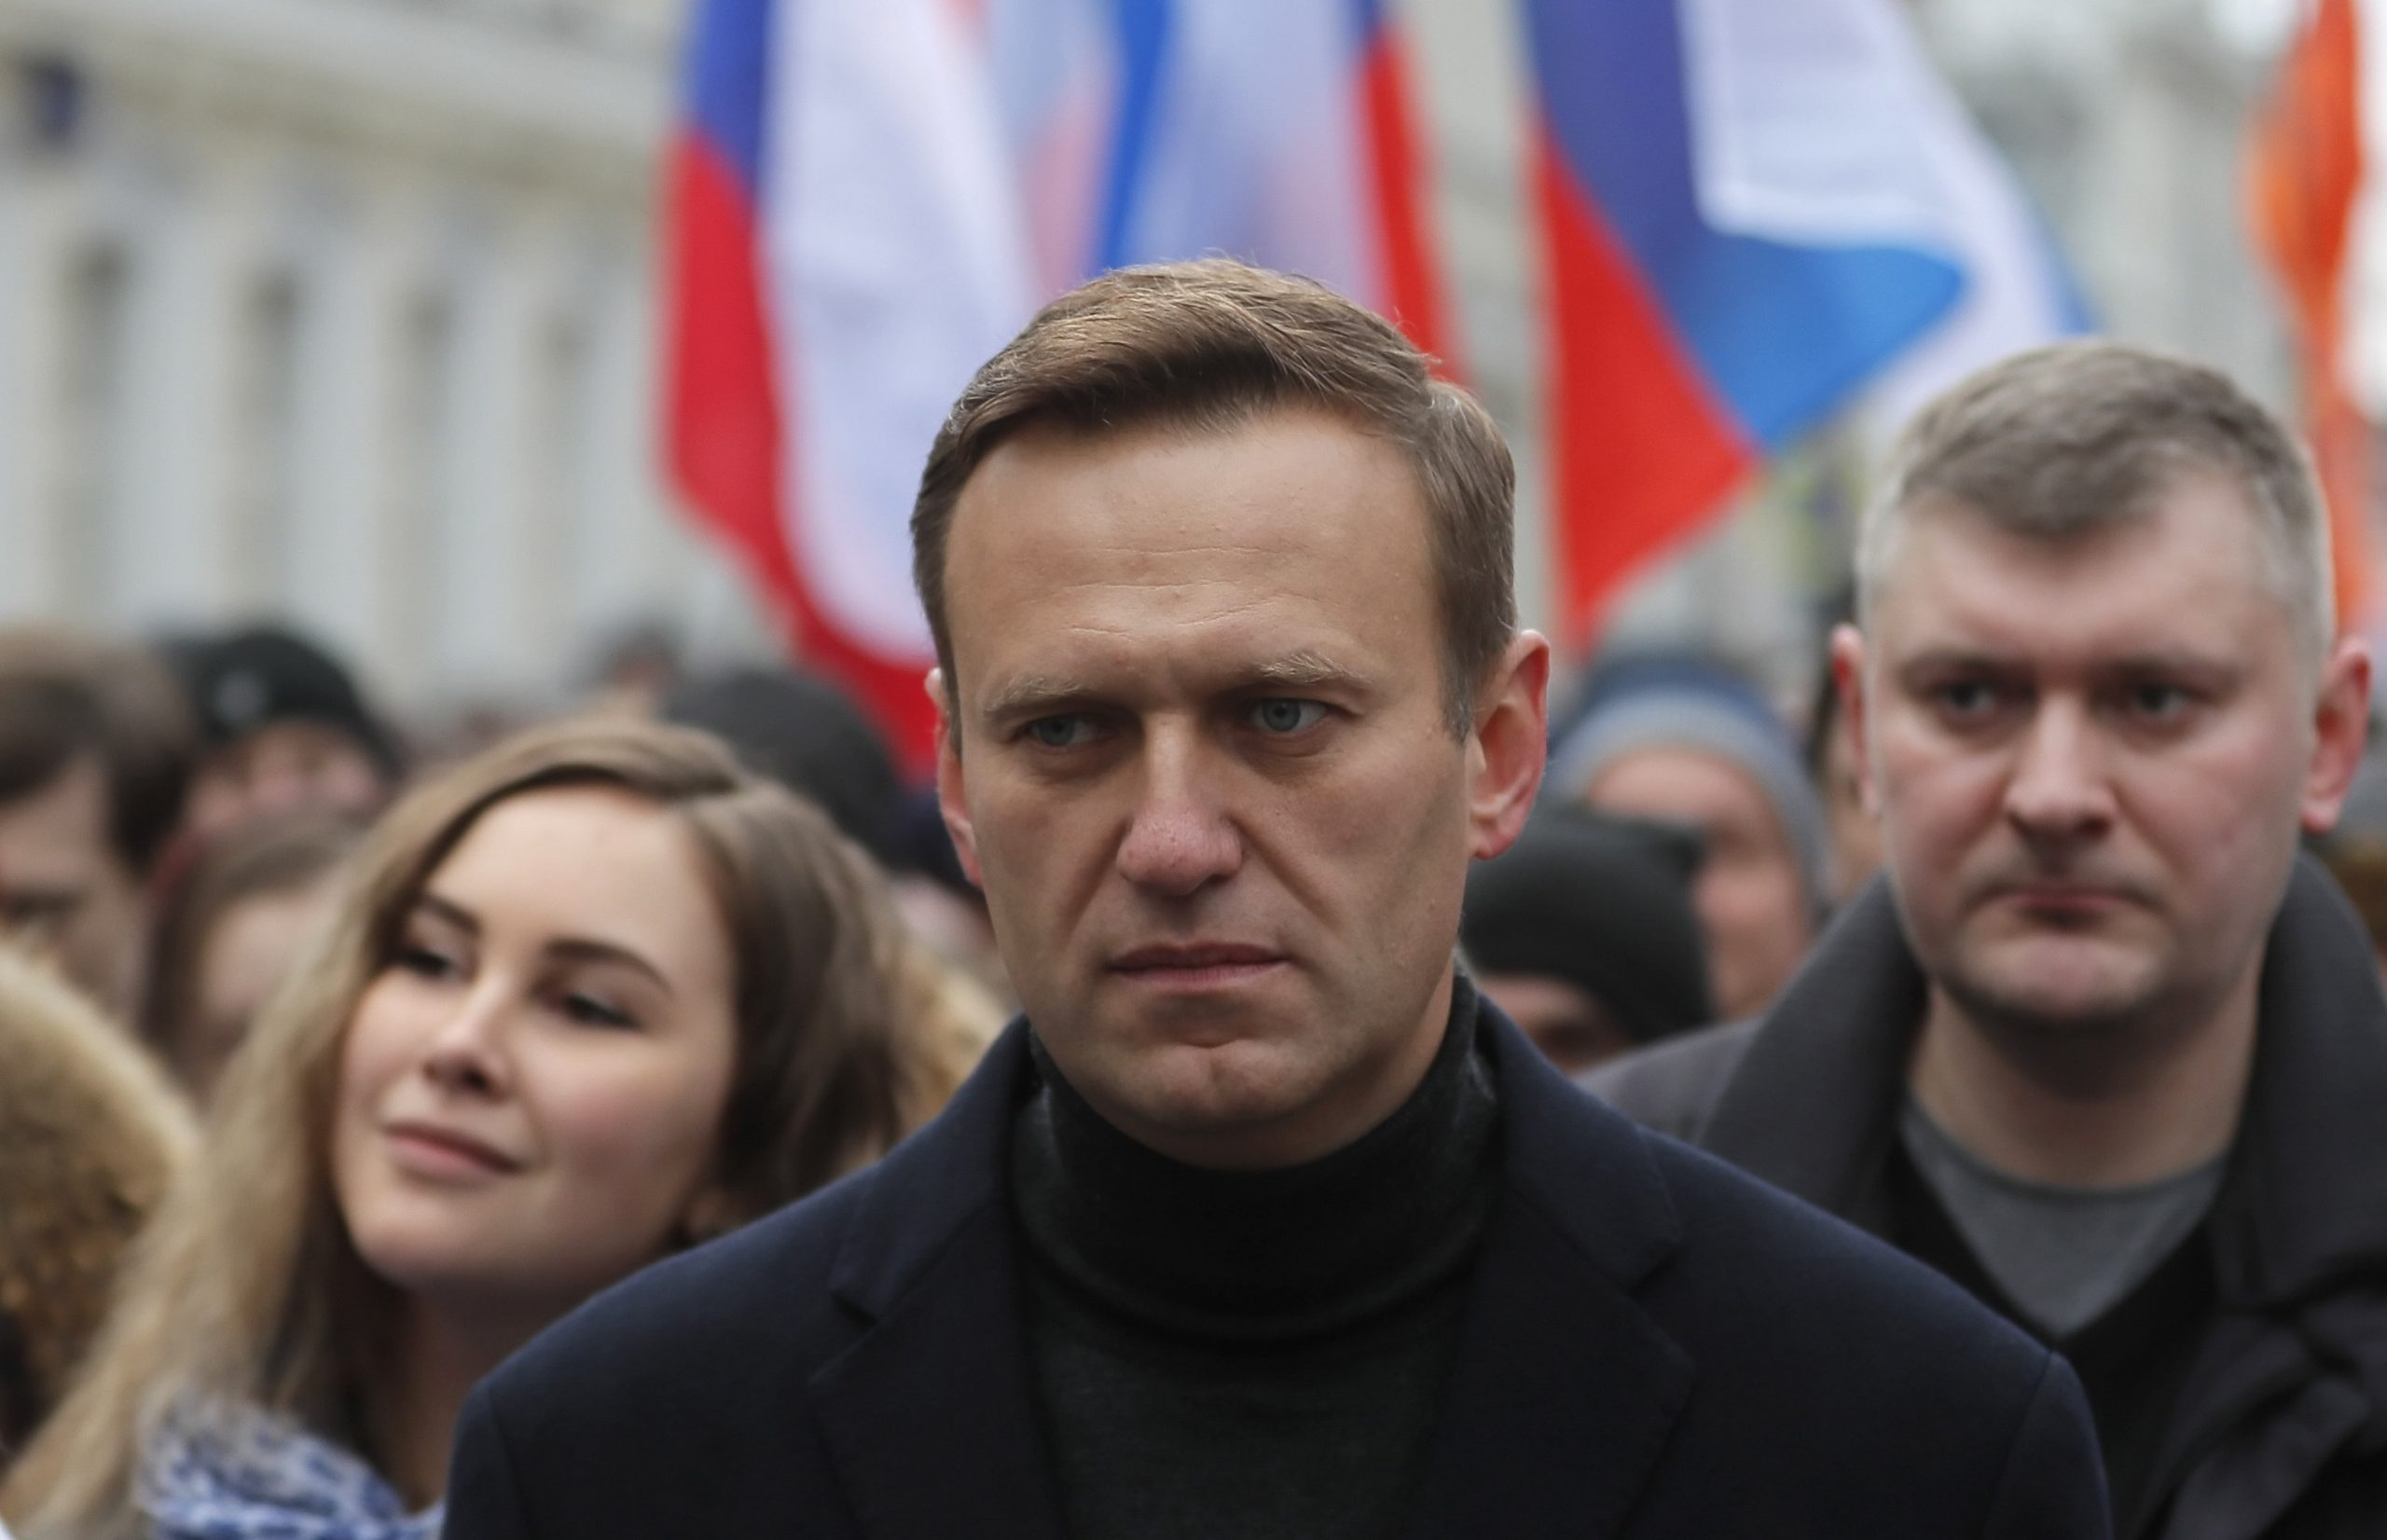 Hungary Joins EU in Condemning Russia for Arrest of Alexei Navalny